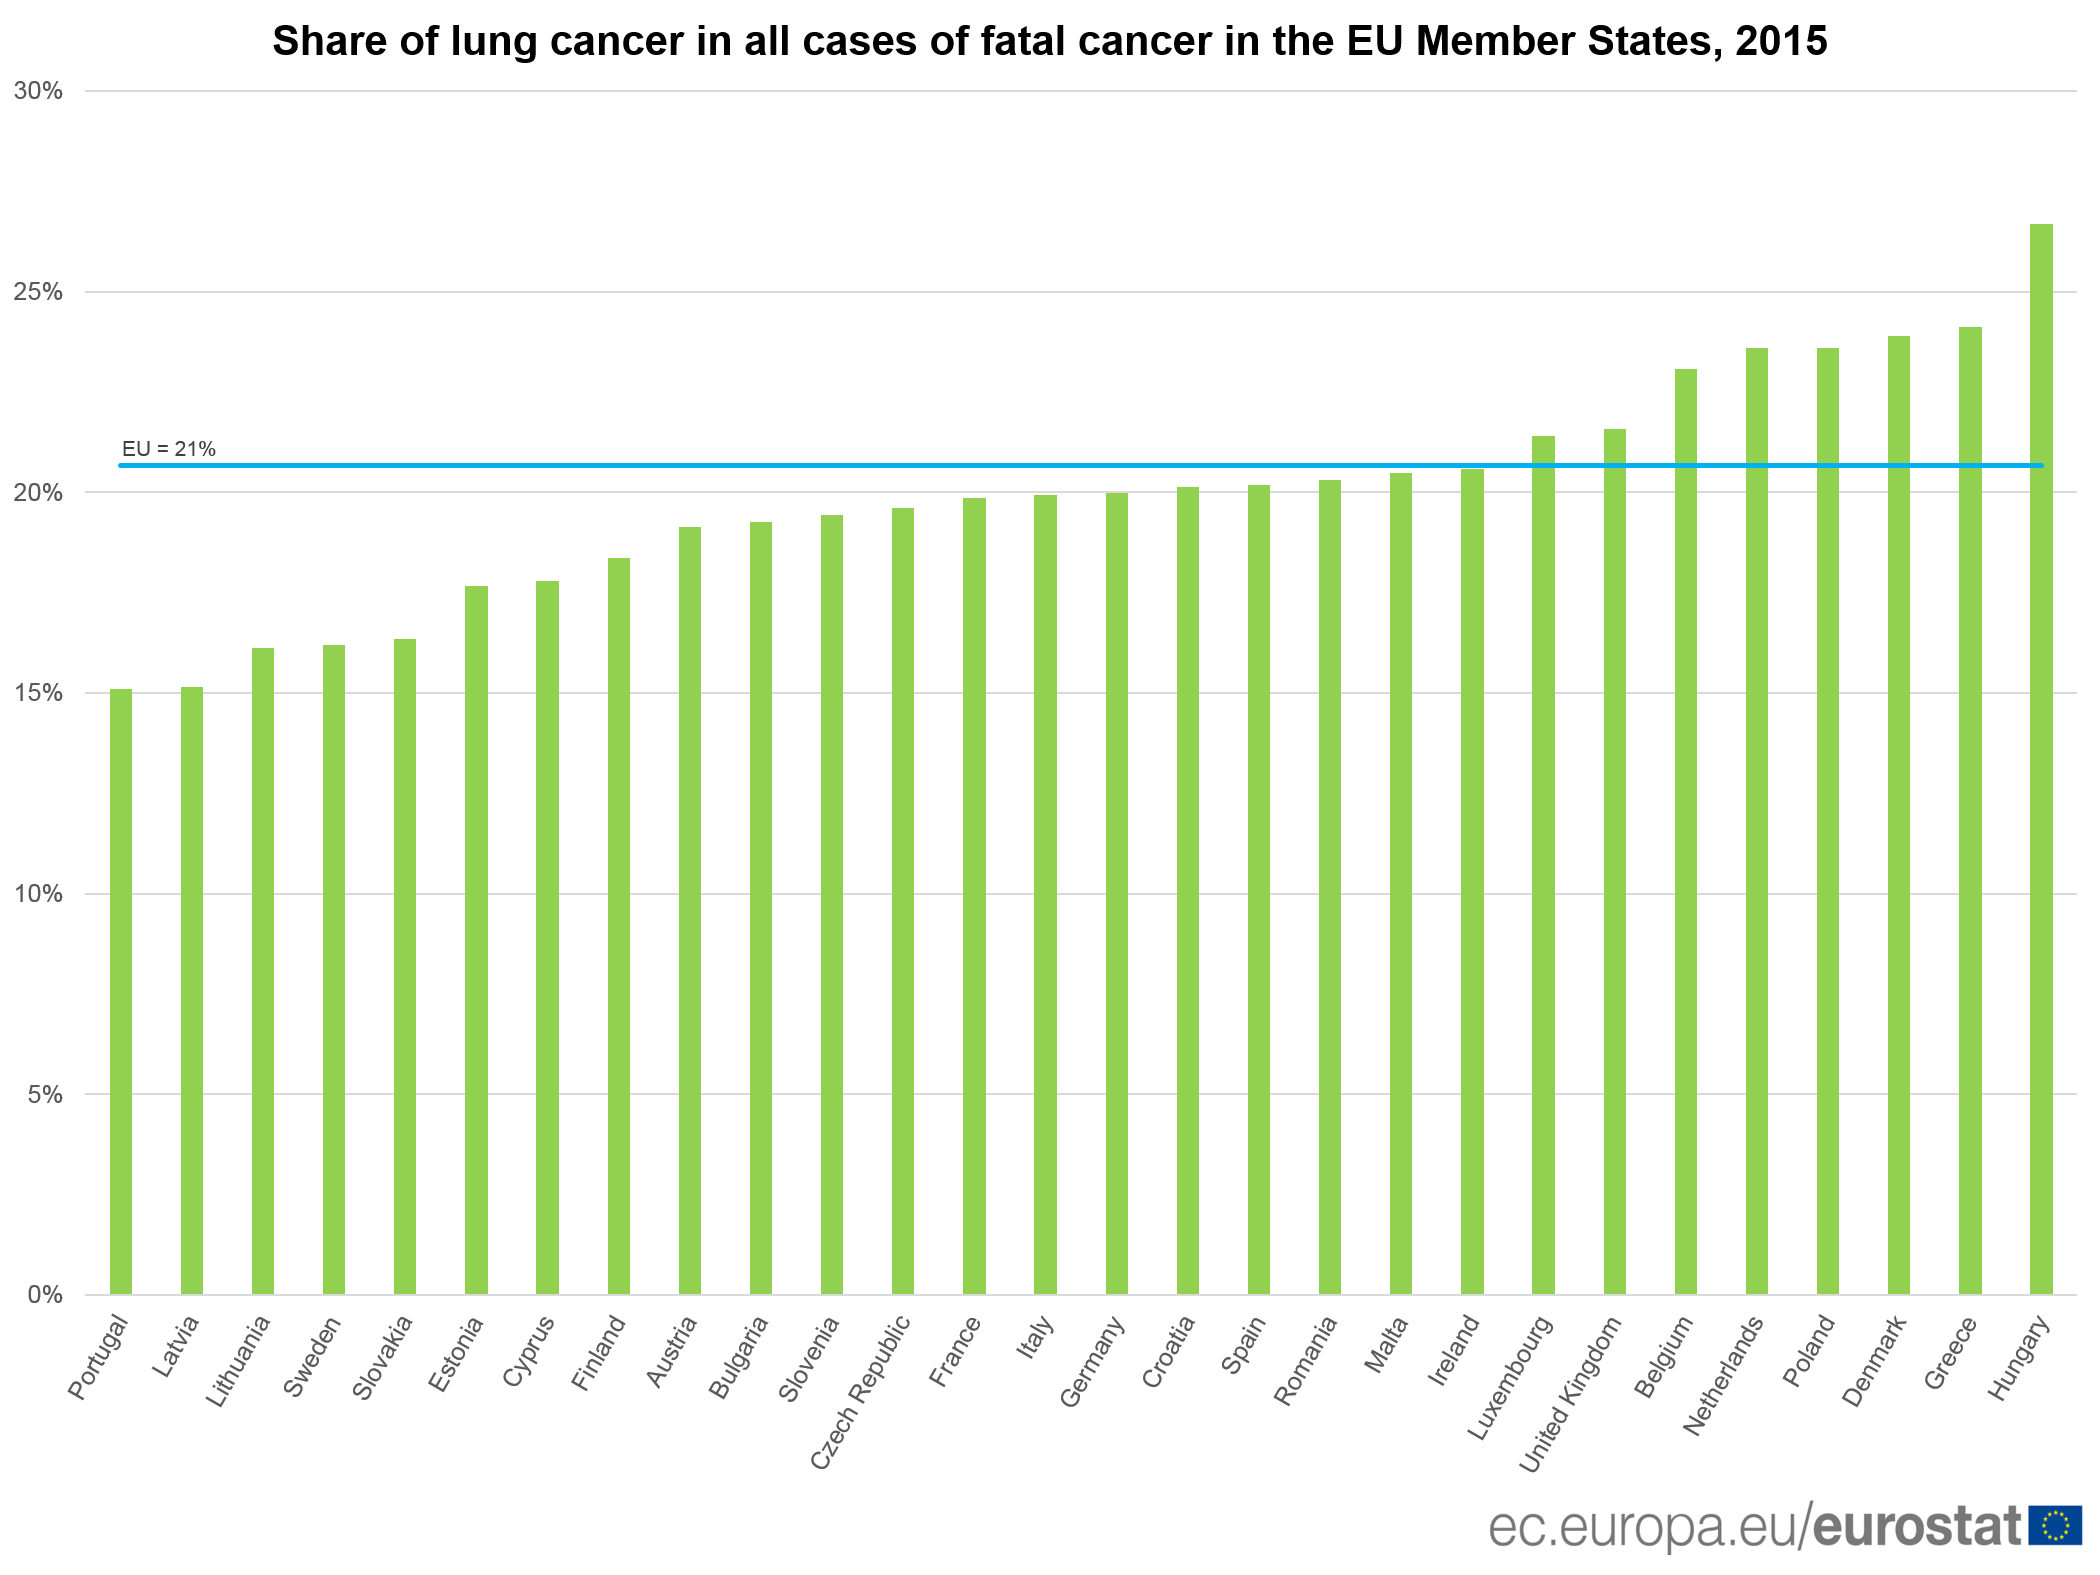 Share of lung cancer in all cases of fatal cancer